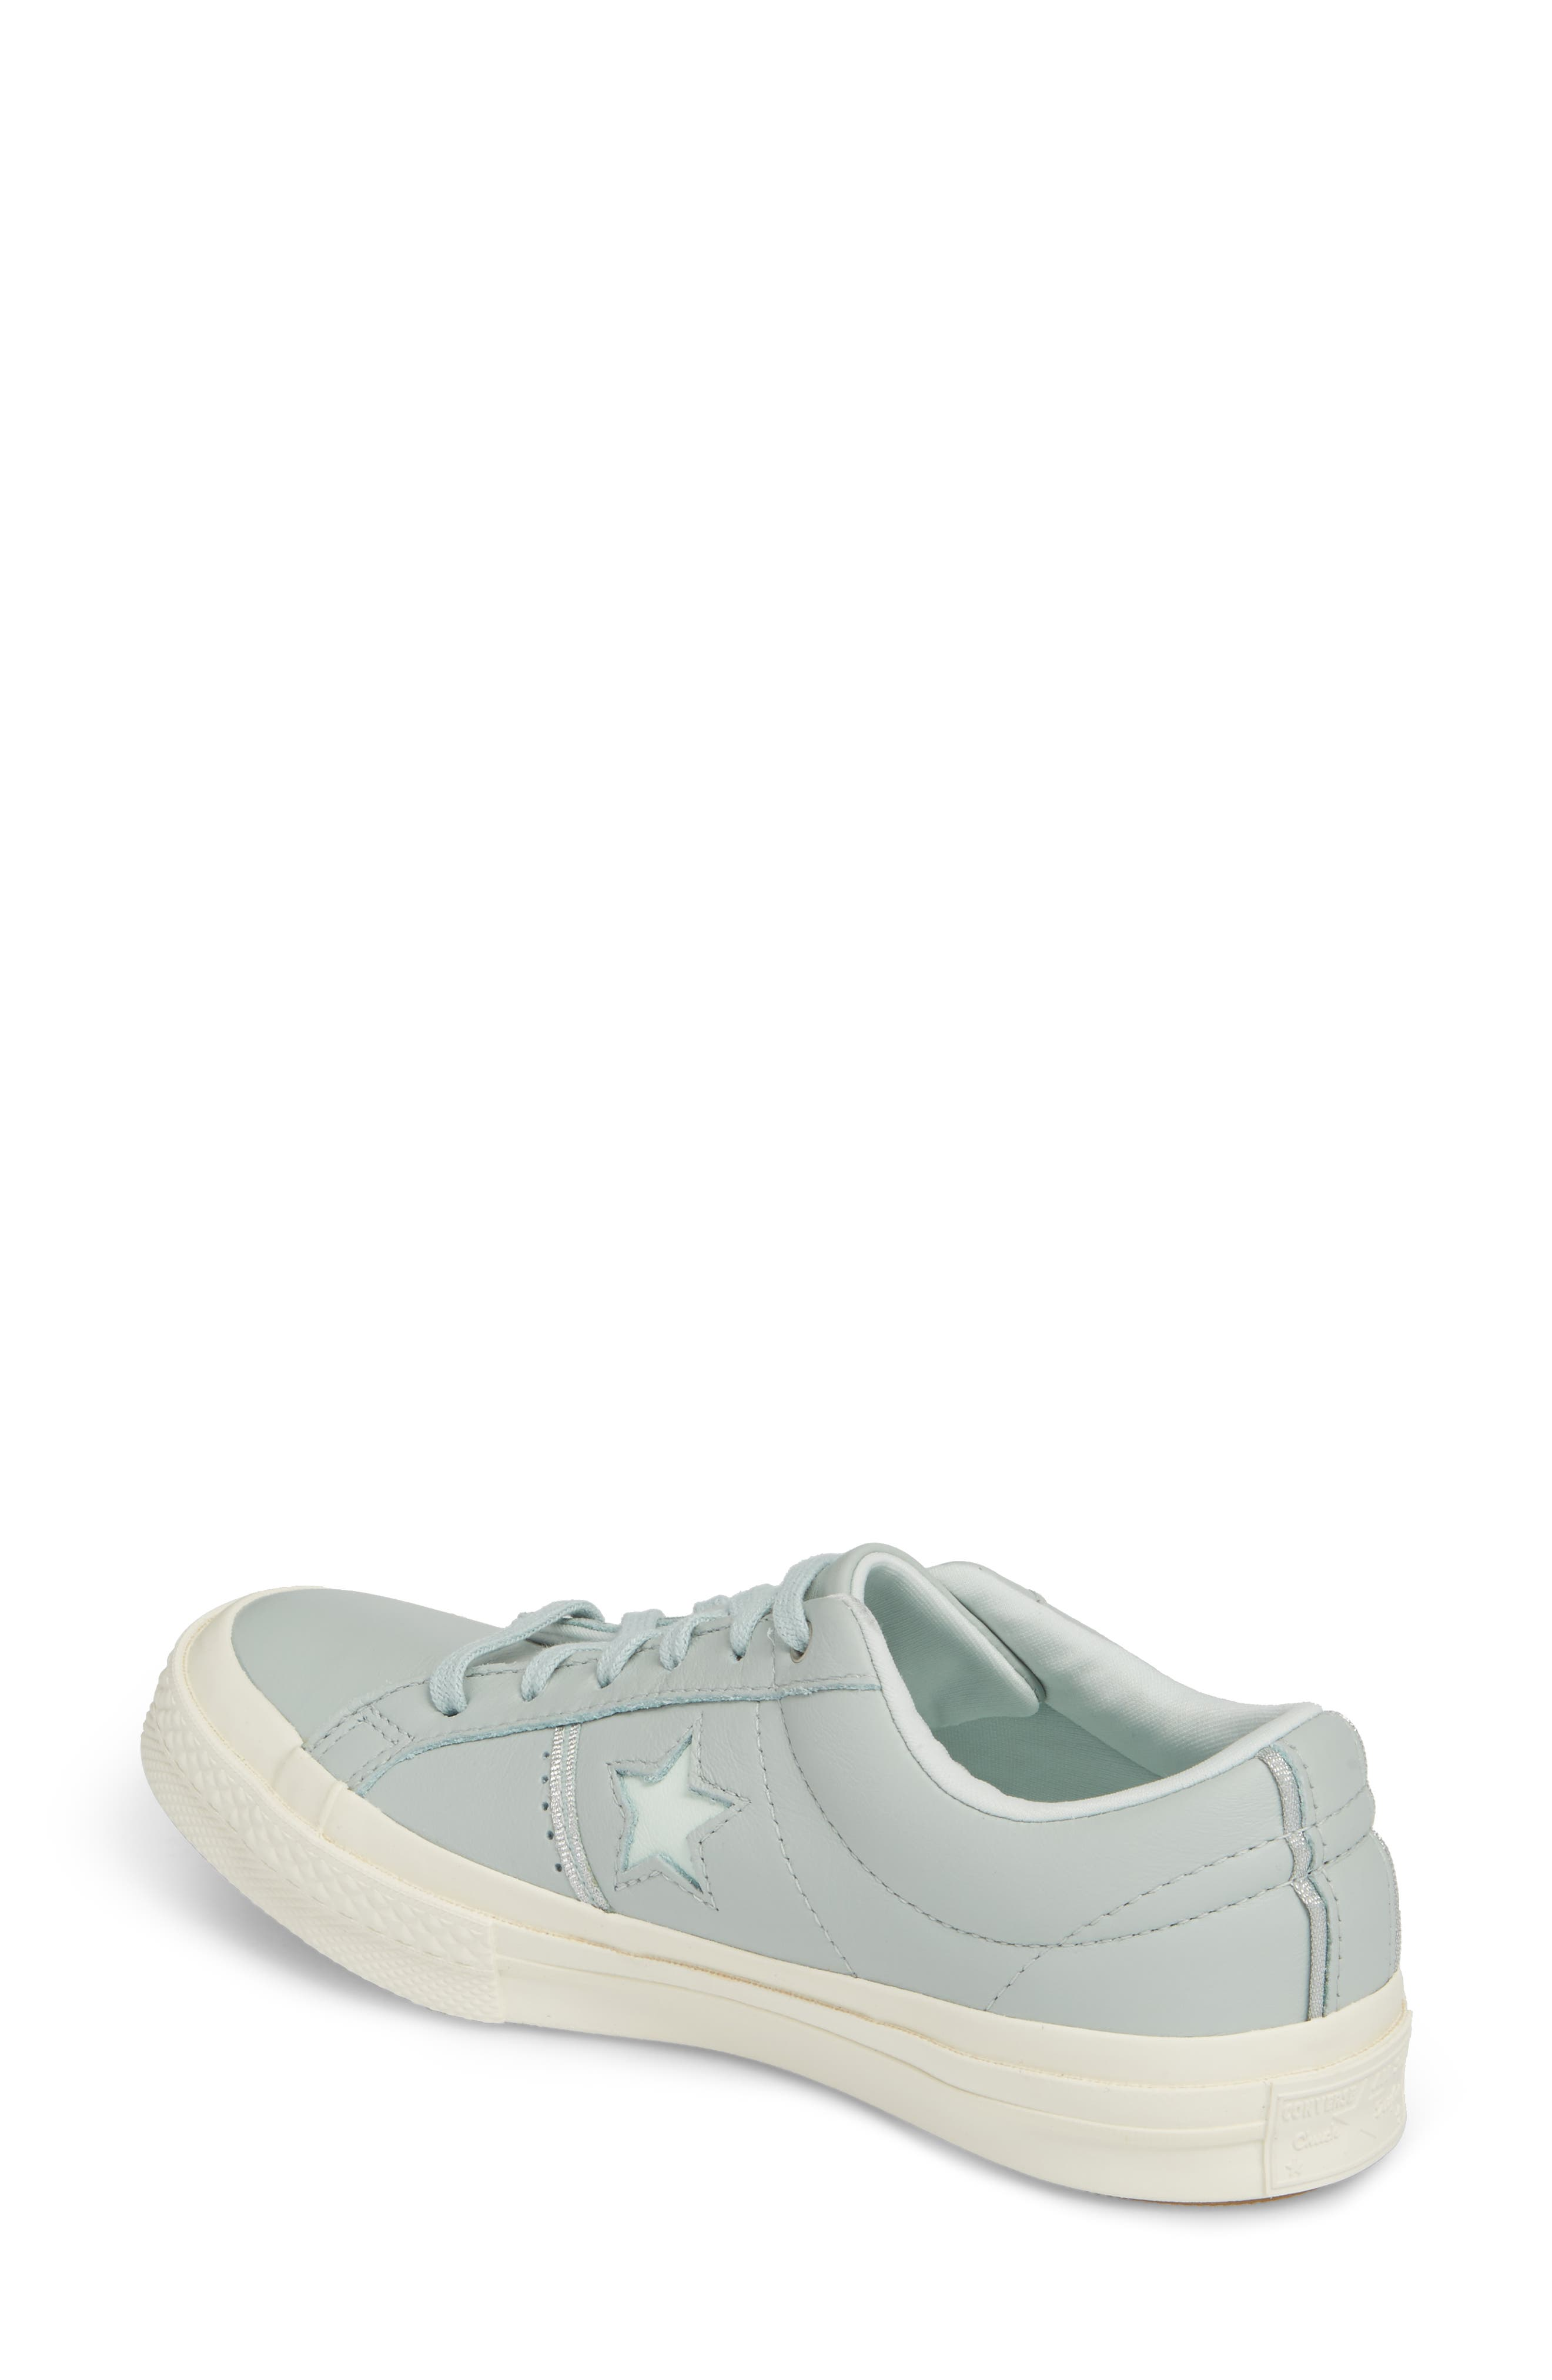 One Star Piping Sneaker,                             Alternate thumbnail 6, color,